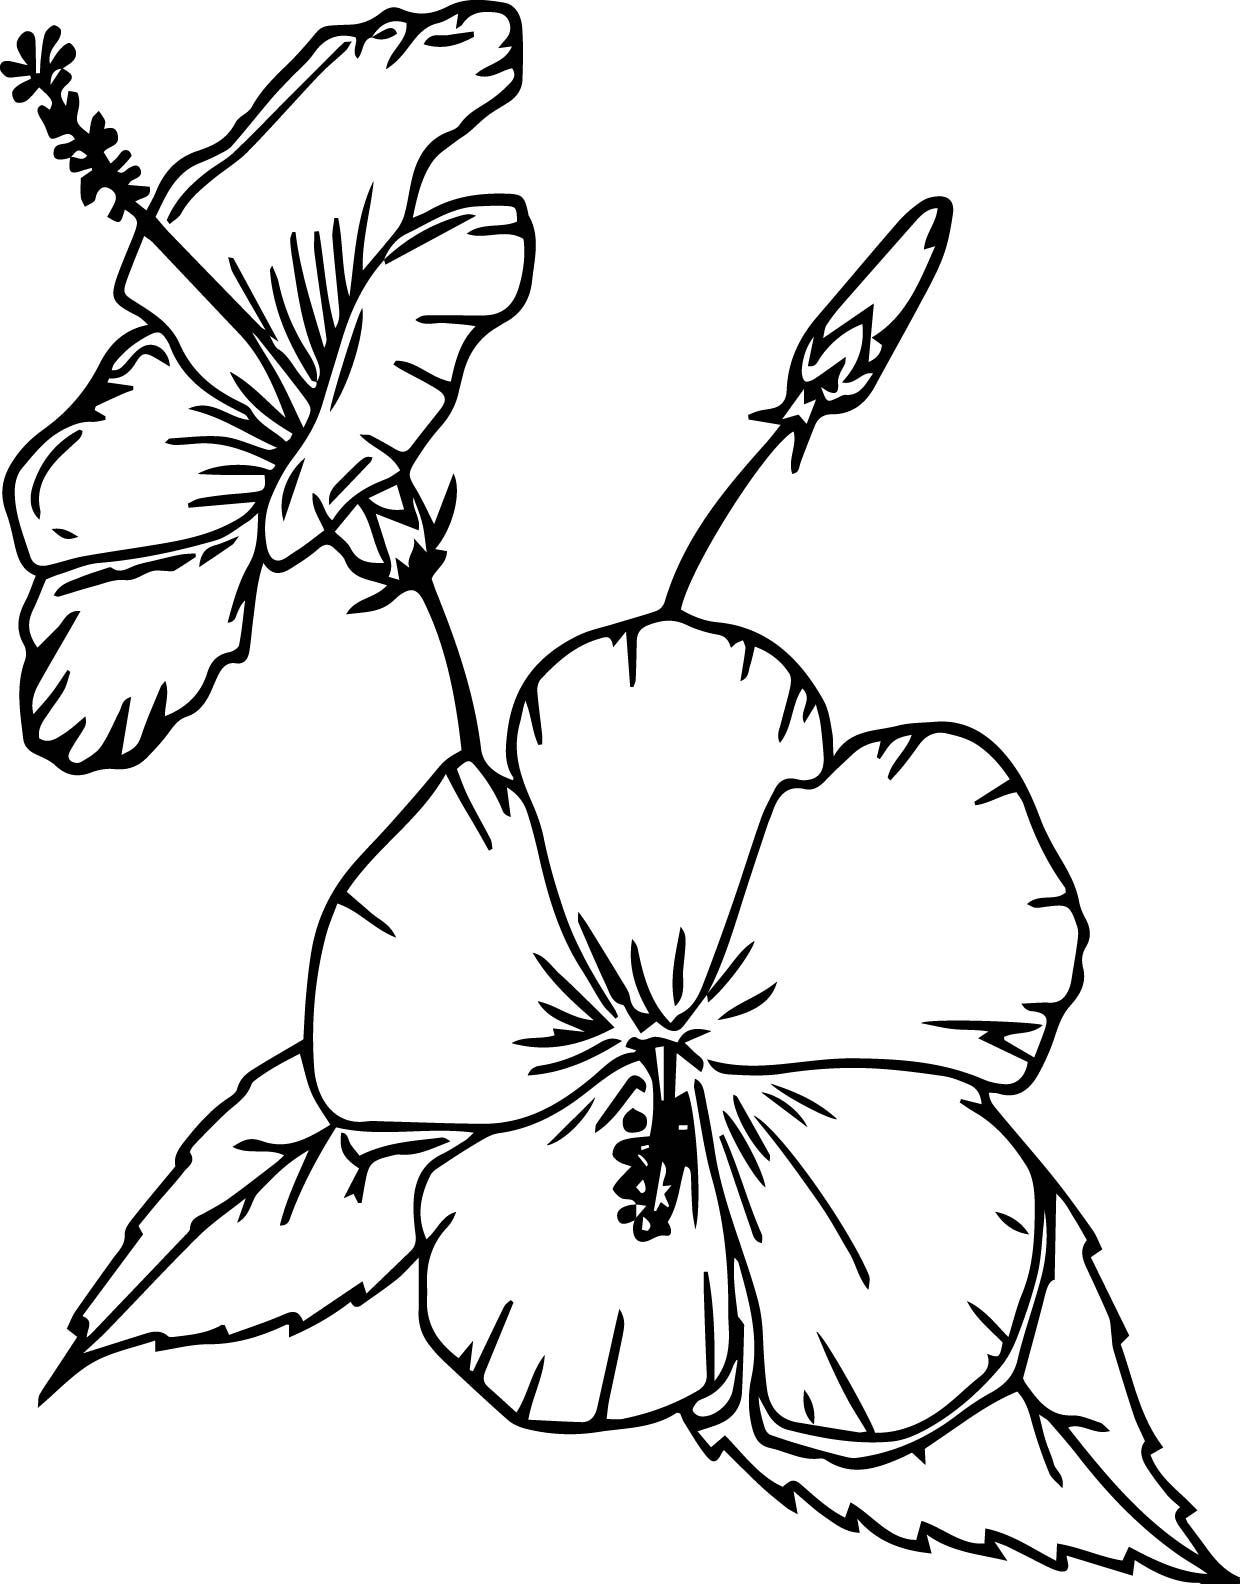 Cartoon Flowers China Rose Coloring Page Hawaiian Flower Drawing Rose Coloring Pages Printable Flower Coloring Pages